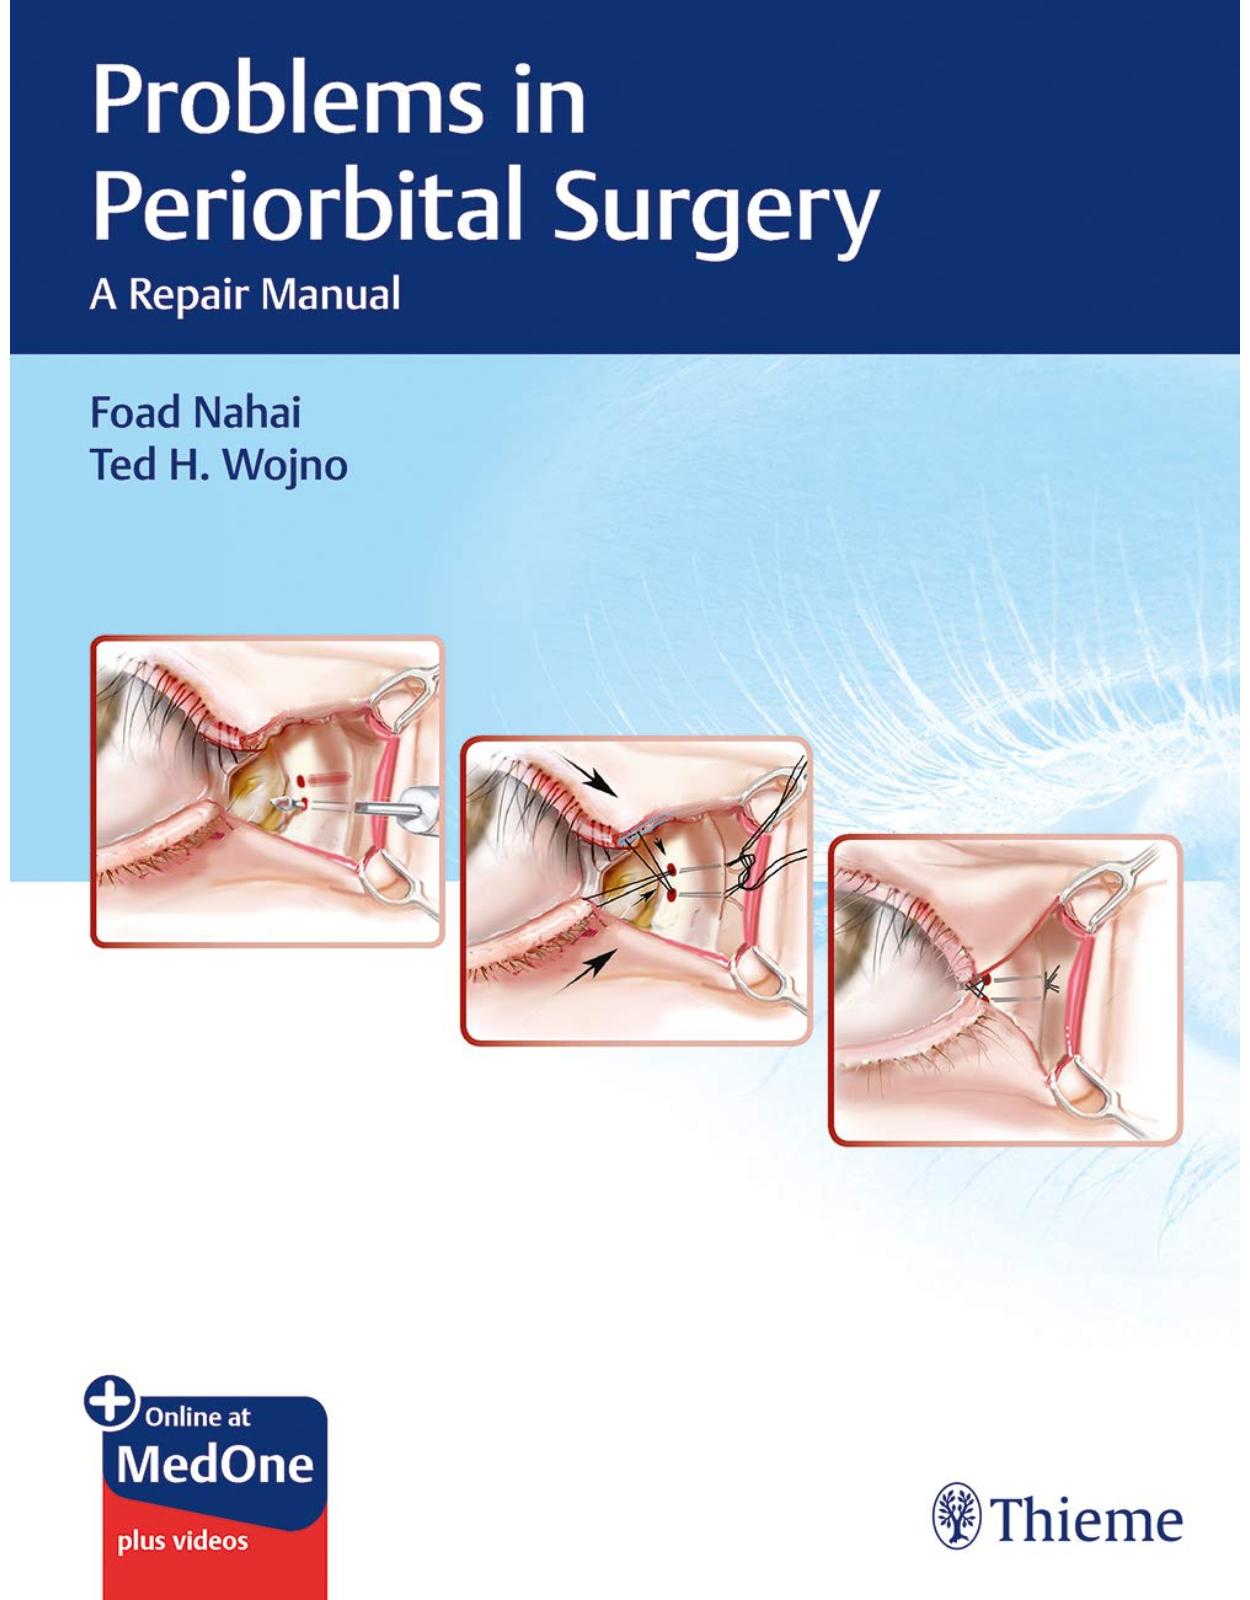 Problems in Periorbital Surgery: A Repair Manual